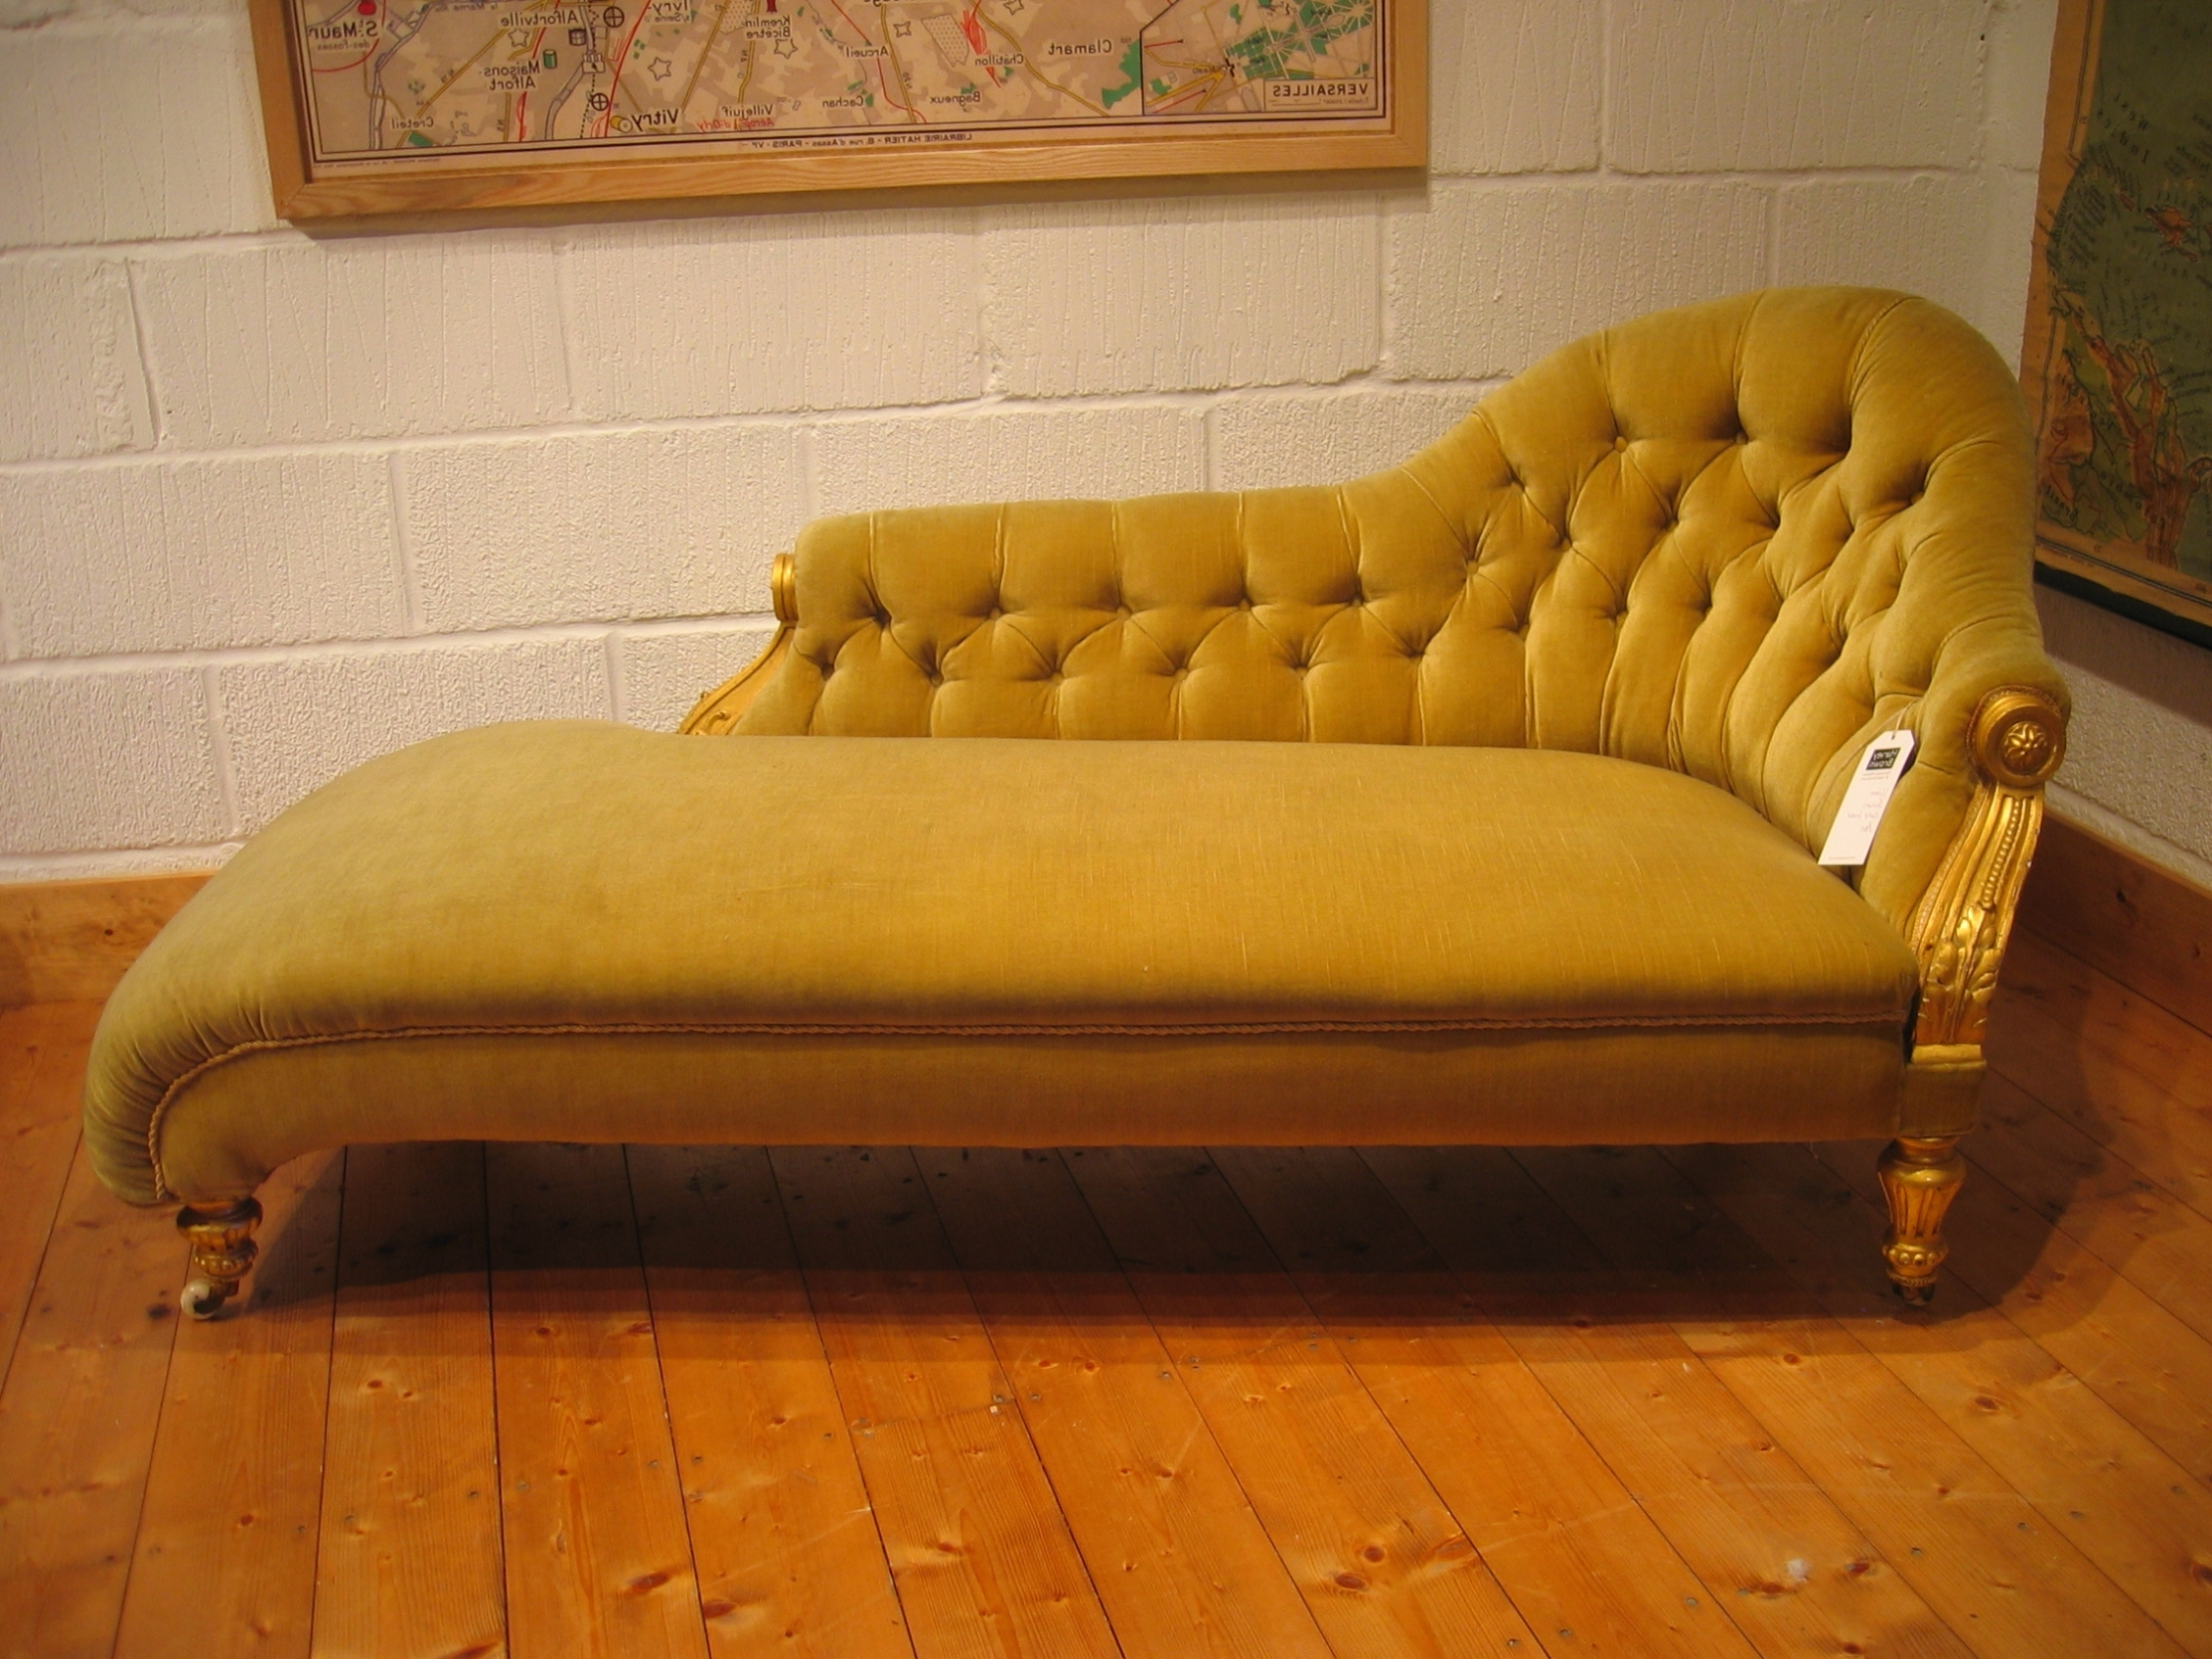 Most Recently Released Vintage Indoor Chaise Lounge Chairs Pertaining To Home Decor: Yellow Color Antique Victorian Chaise Lounge Sofa Bed (View 8 of 15)